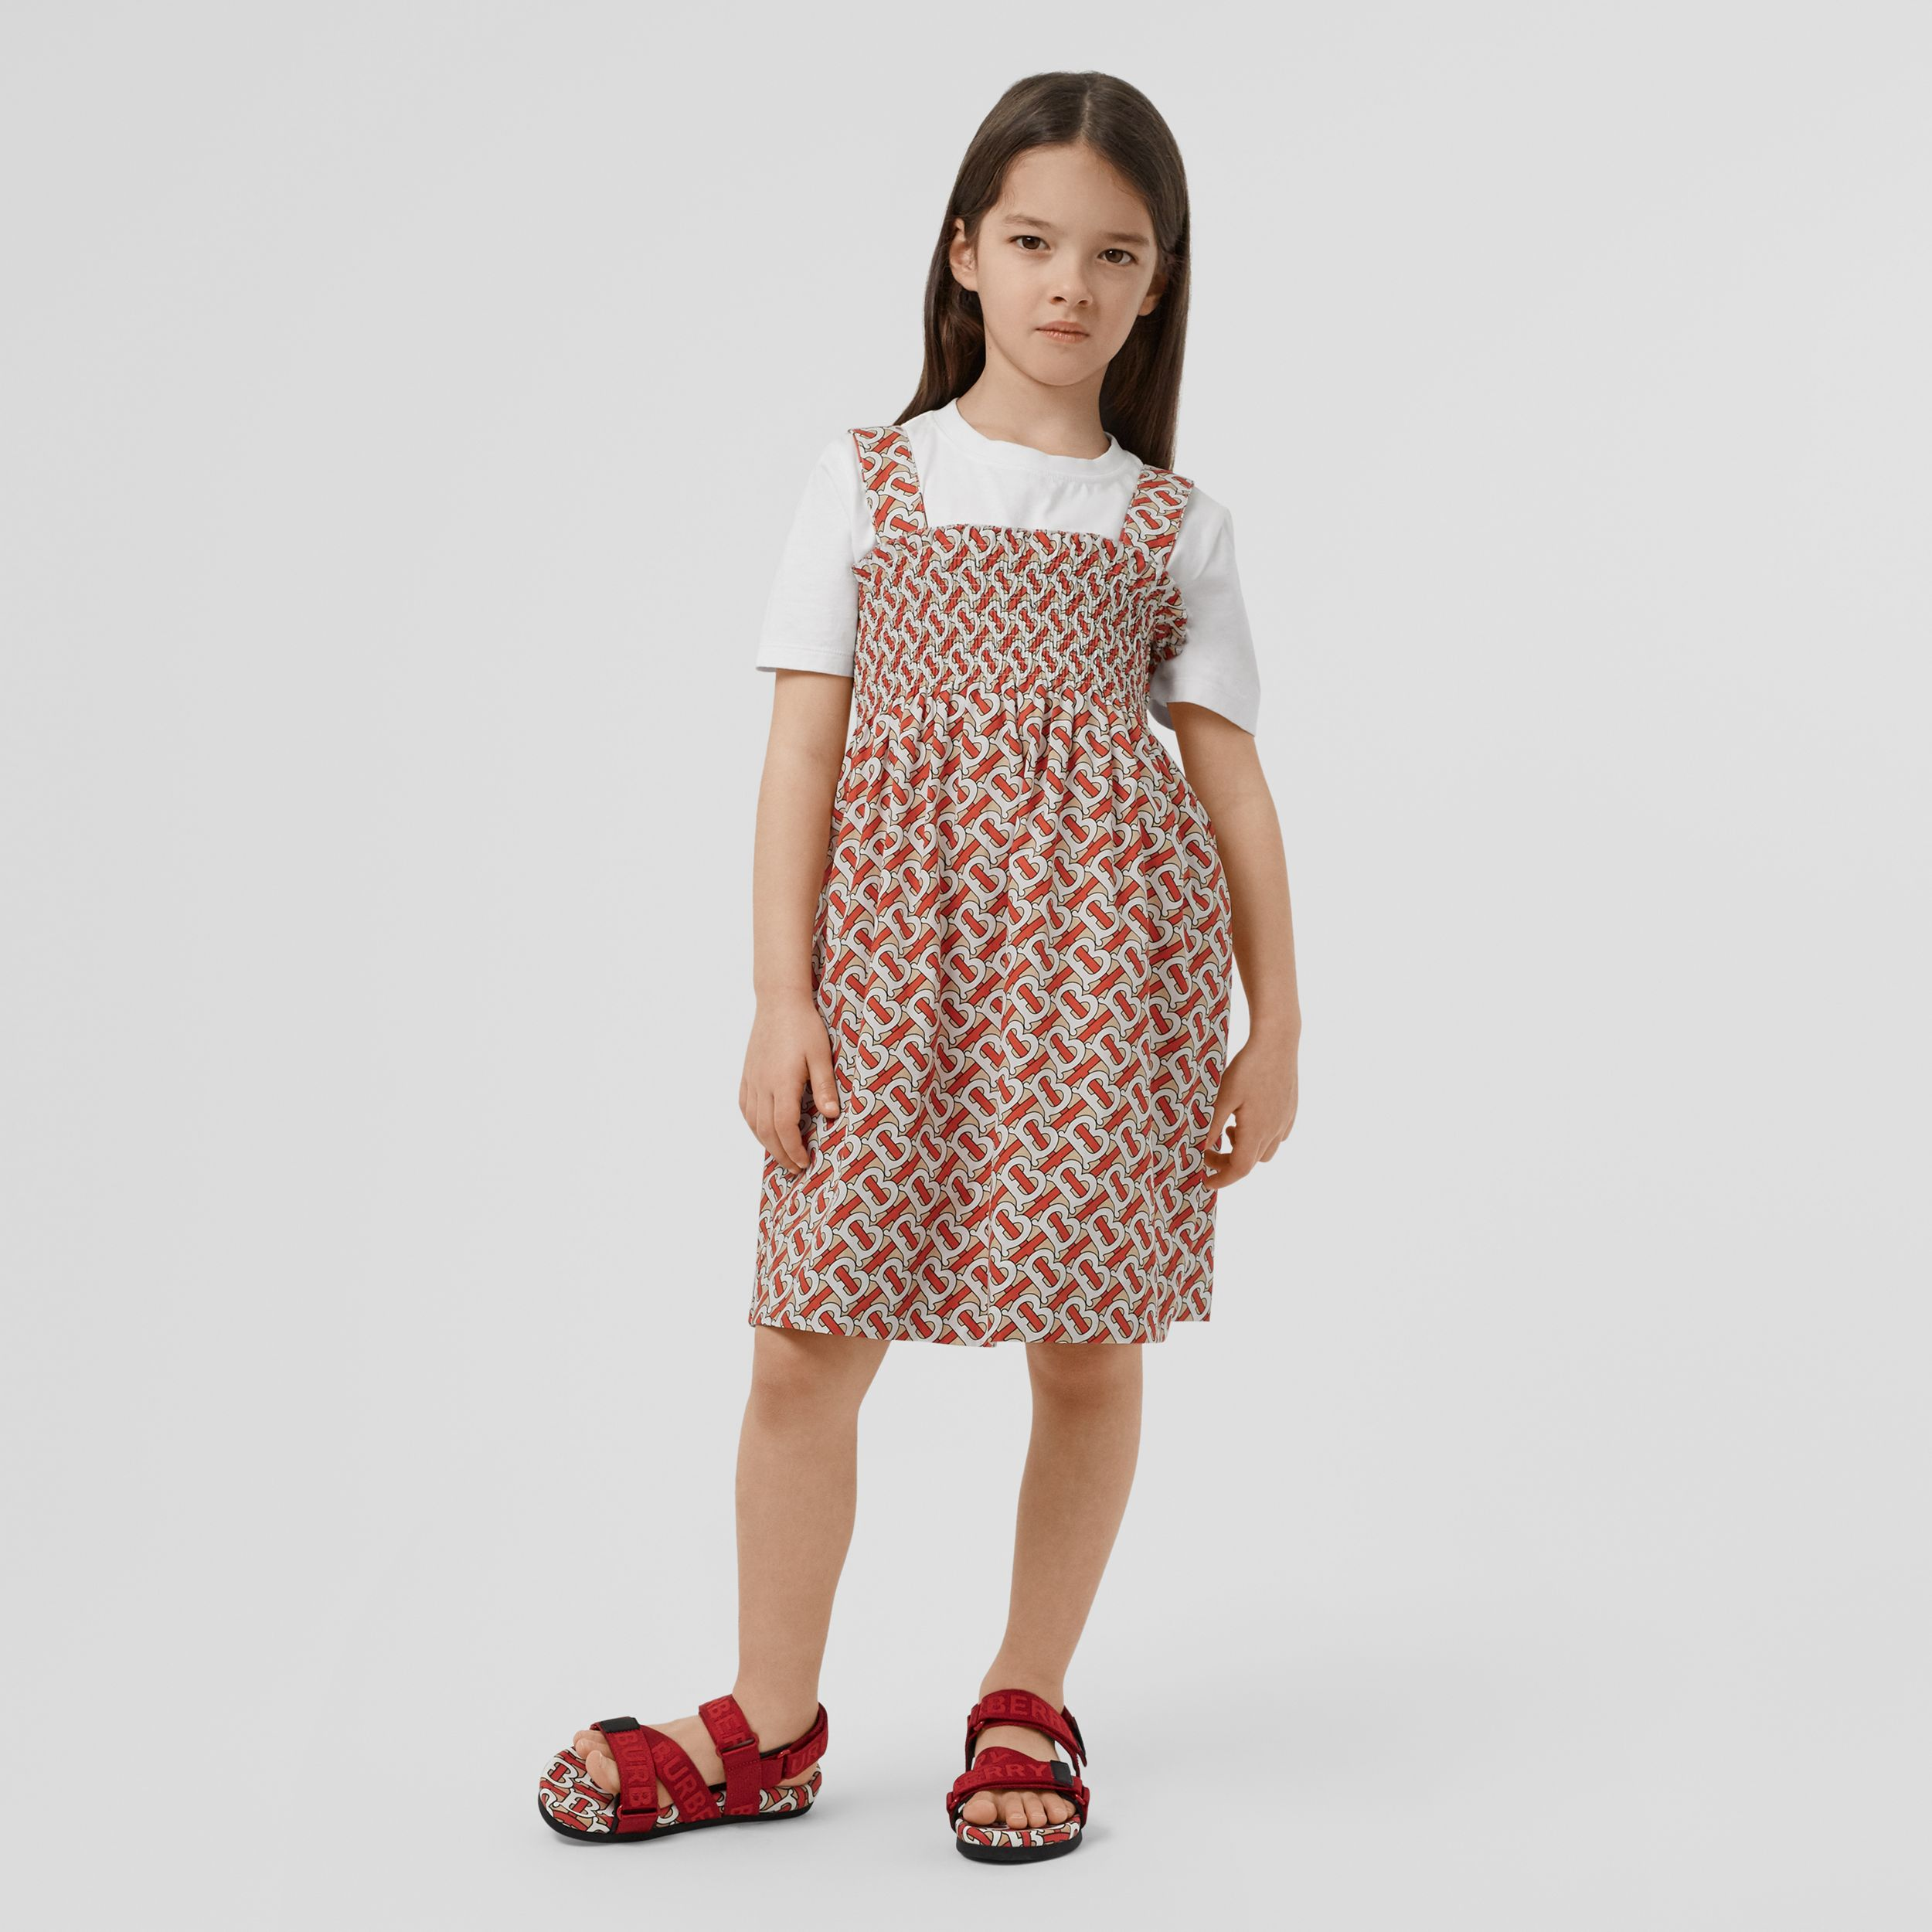 Smocked Monogram Print Cotton Poplin Dress in Vermilion Red | Burberry - 3